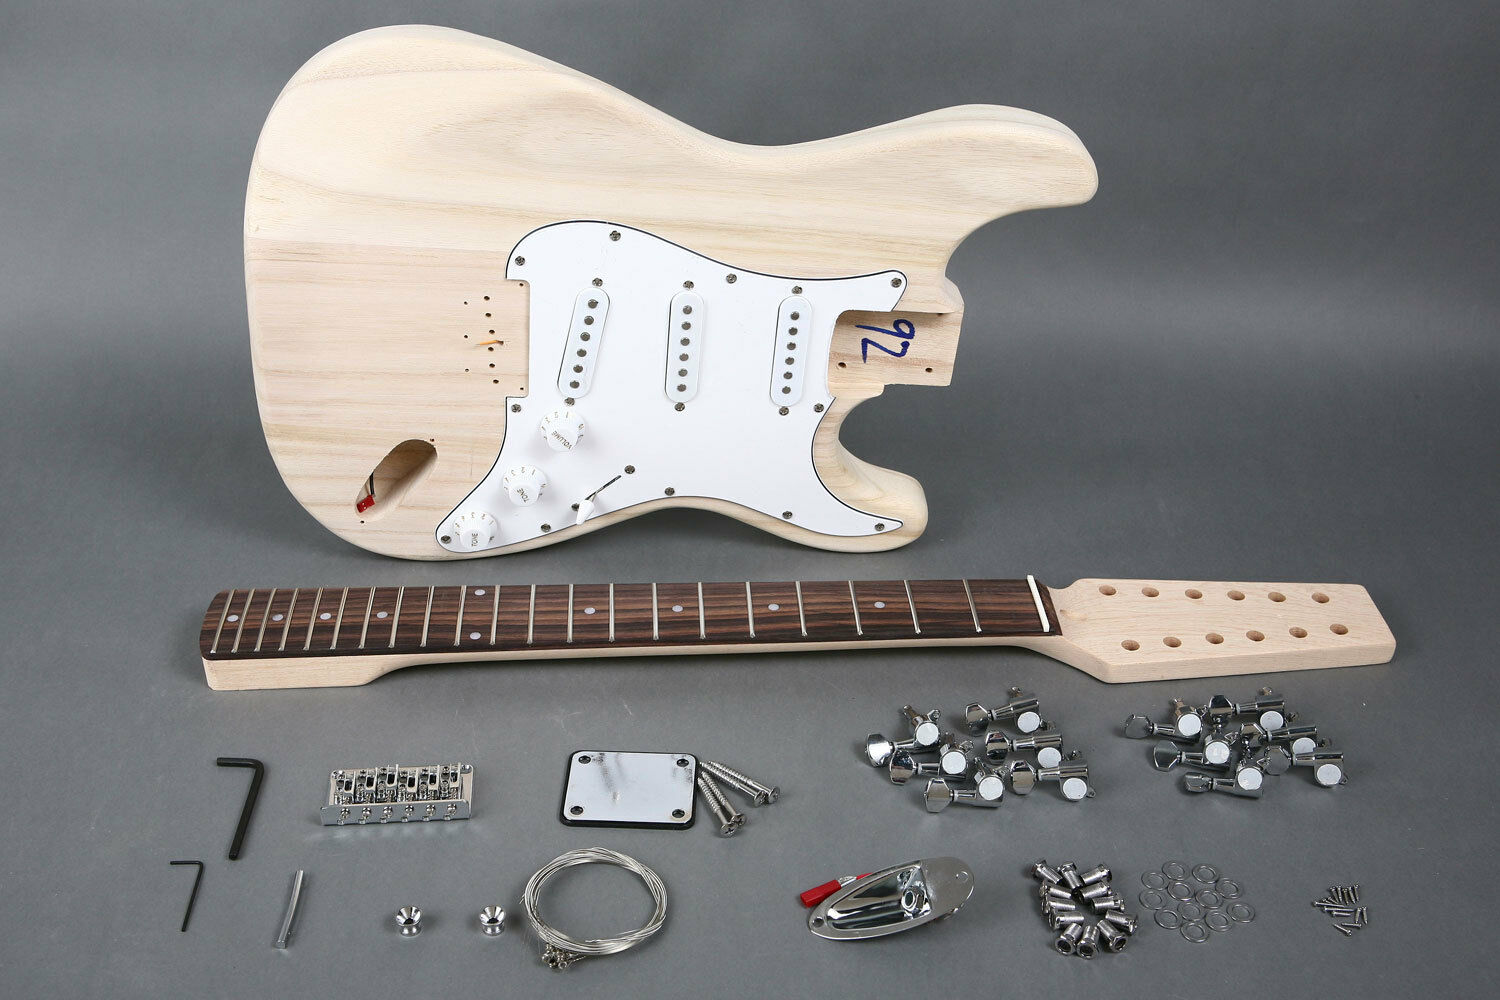 NEW 12 STRING STRAT STYLE DIY PREMIUM ELECTRIC GUITAR LUTHIER BUILDER KIT